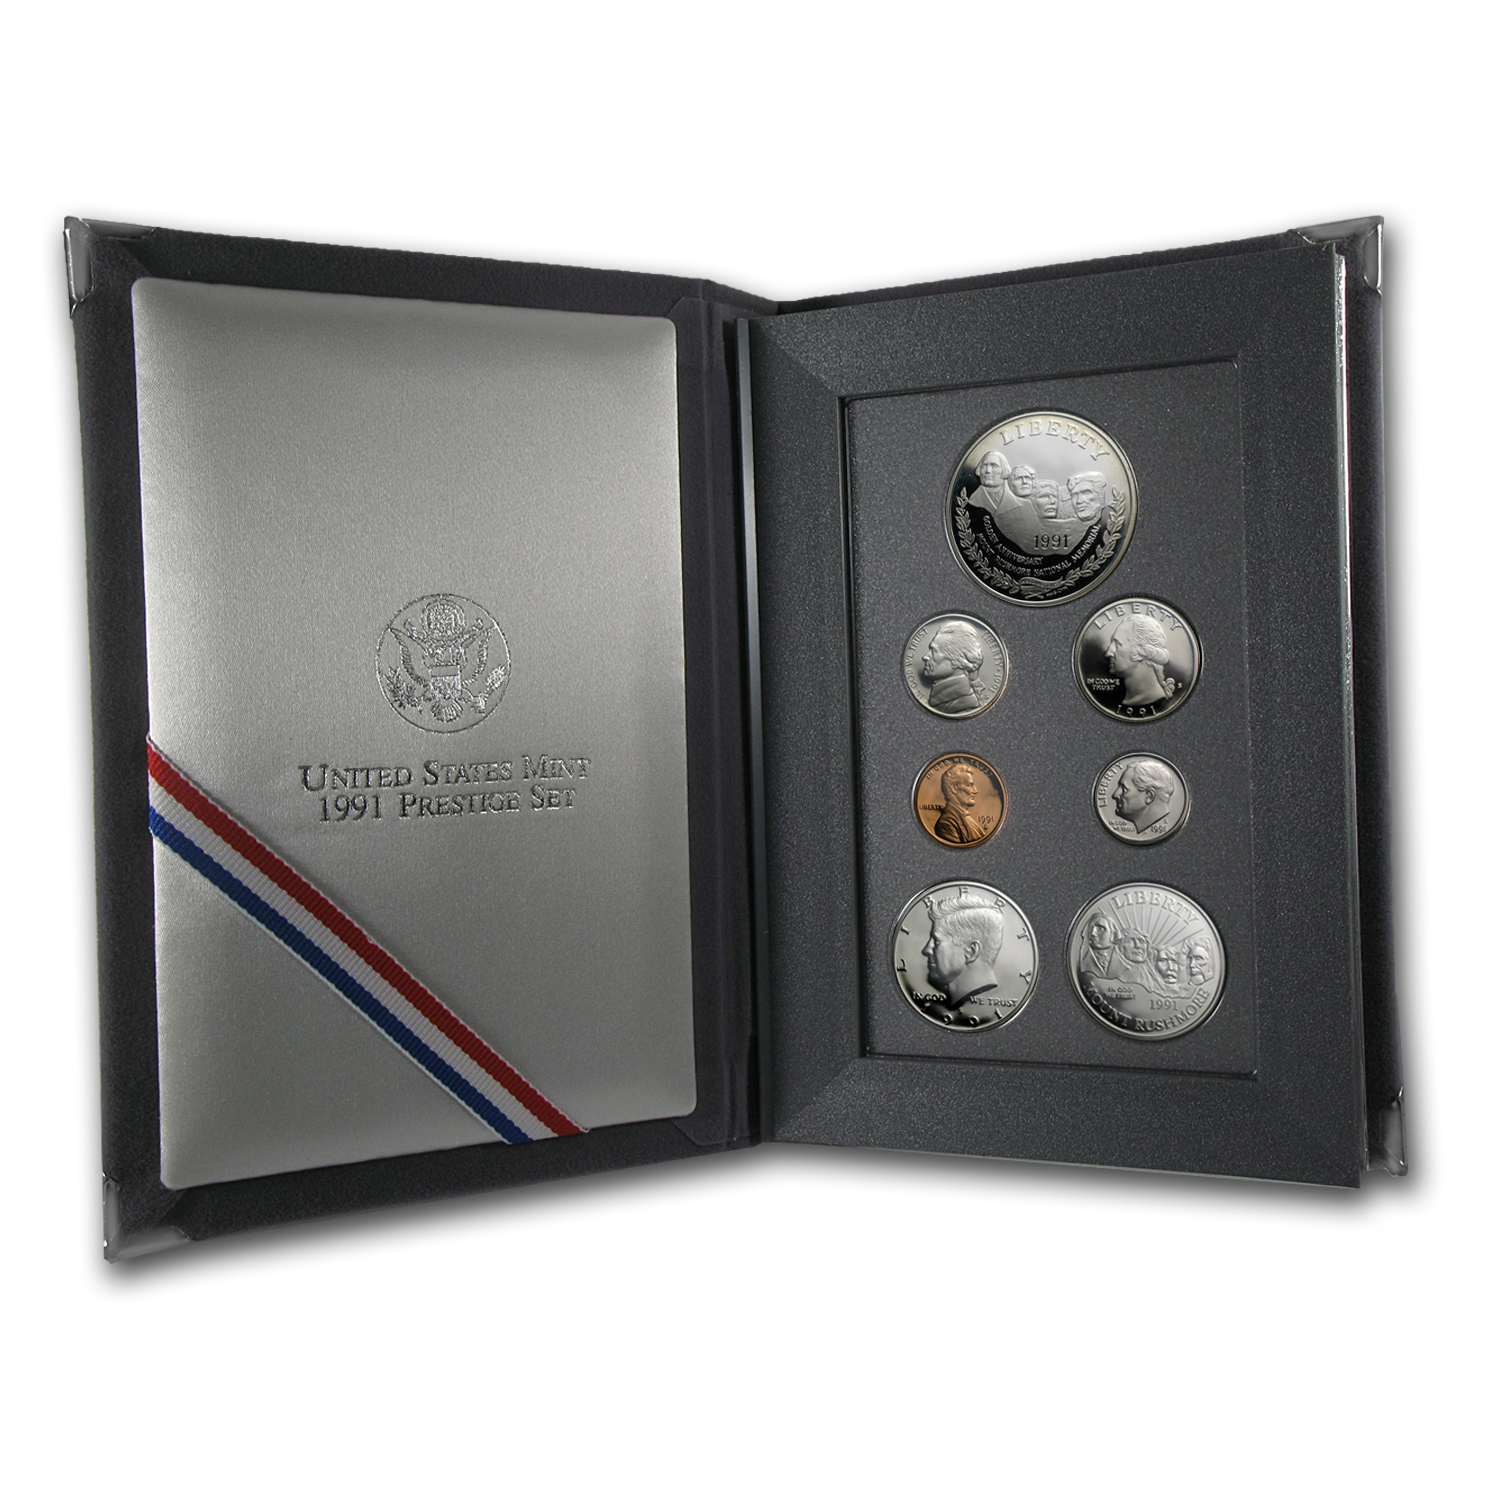 1991 U.S. Mint Prestige Set